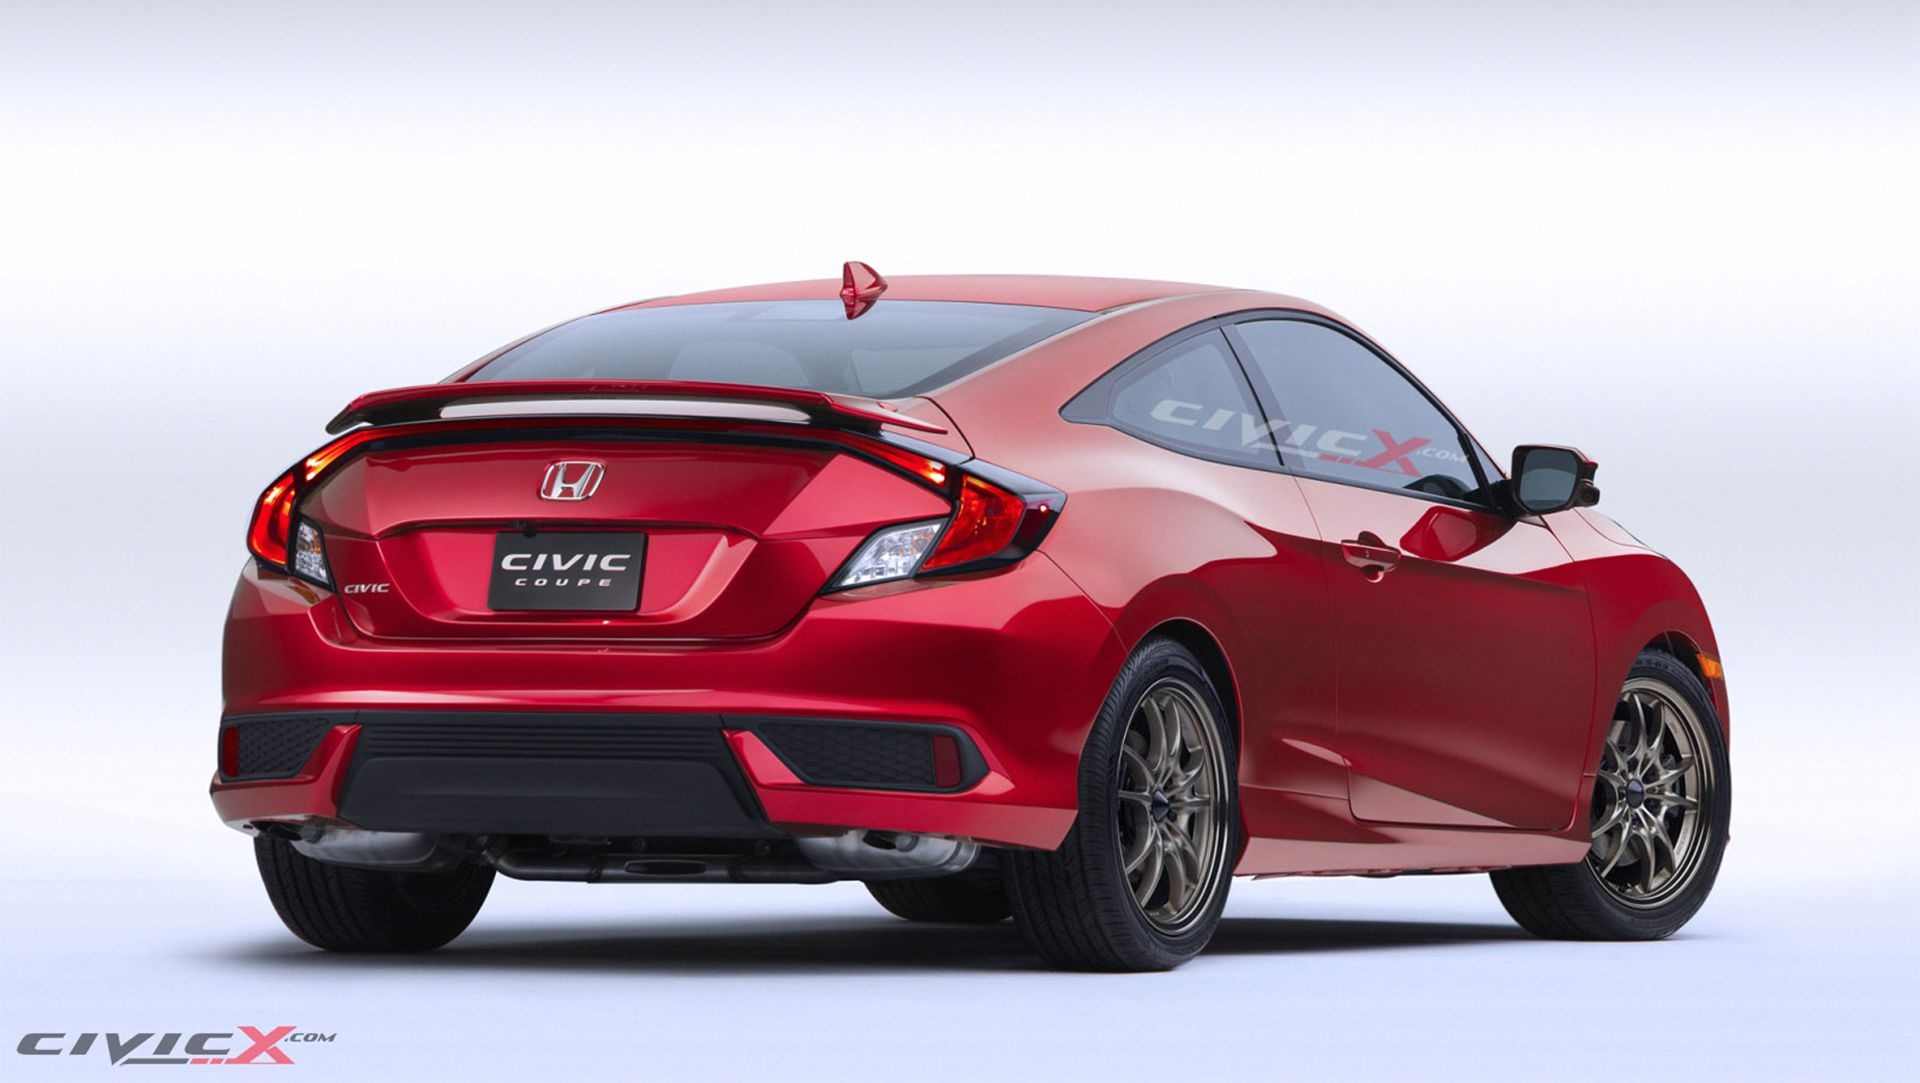 Amazing Honda Civic Coupe Gets Tuned Dec With Honda Civic Coupe Jdm